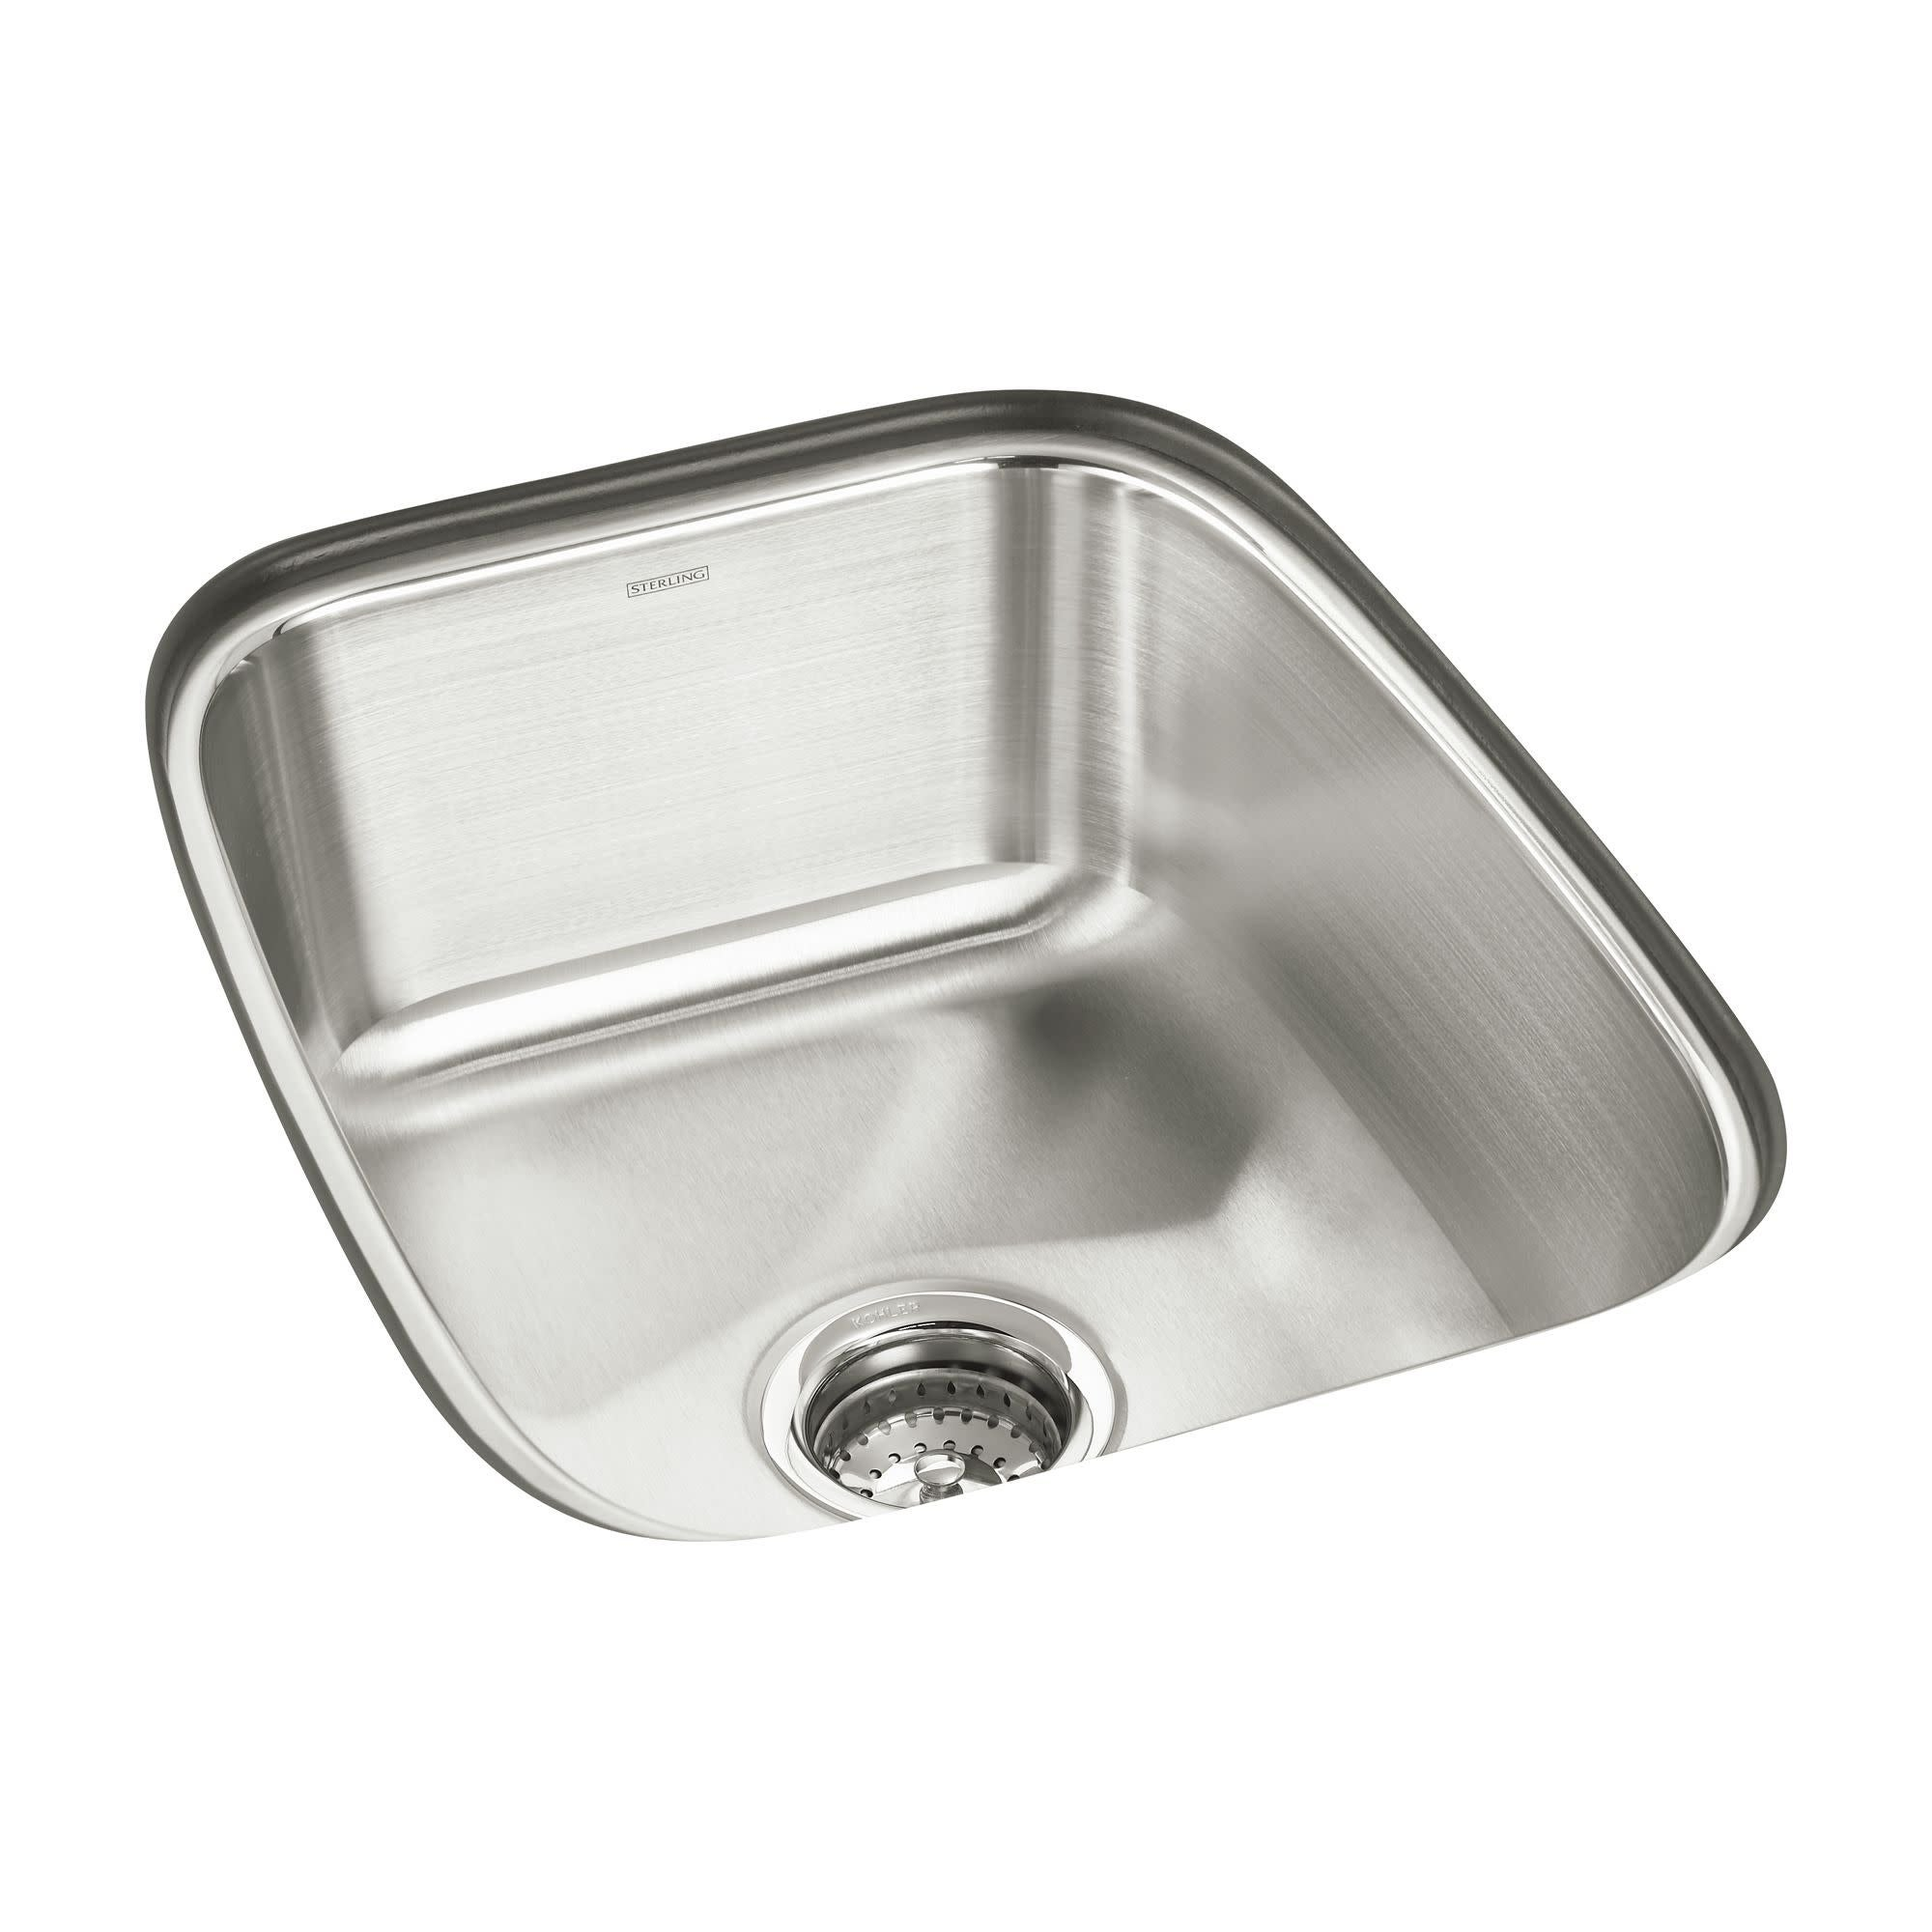 Sterling 11449 Springdale 16 1 2in Single Basin Undermount Stainless Steel Bar Sink With Silentshield Free Shipping Today